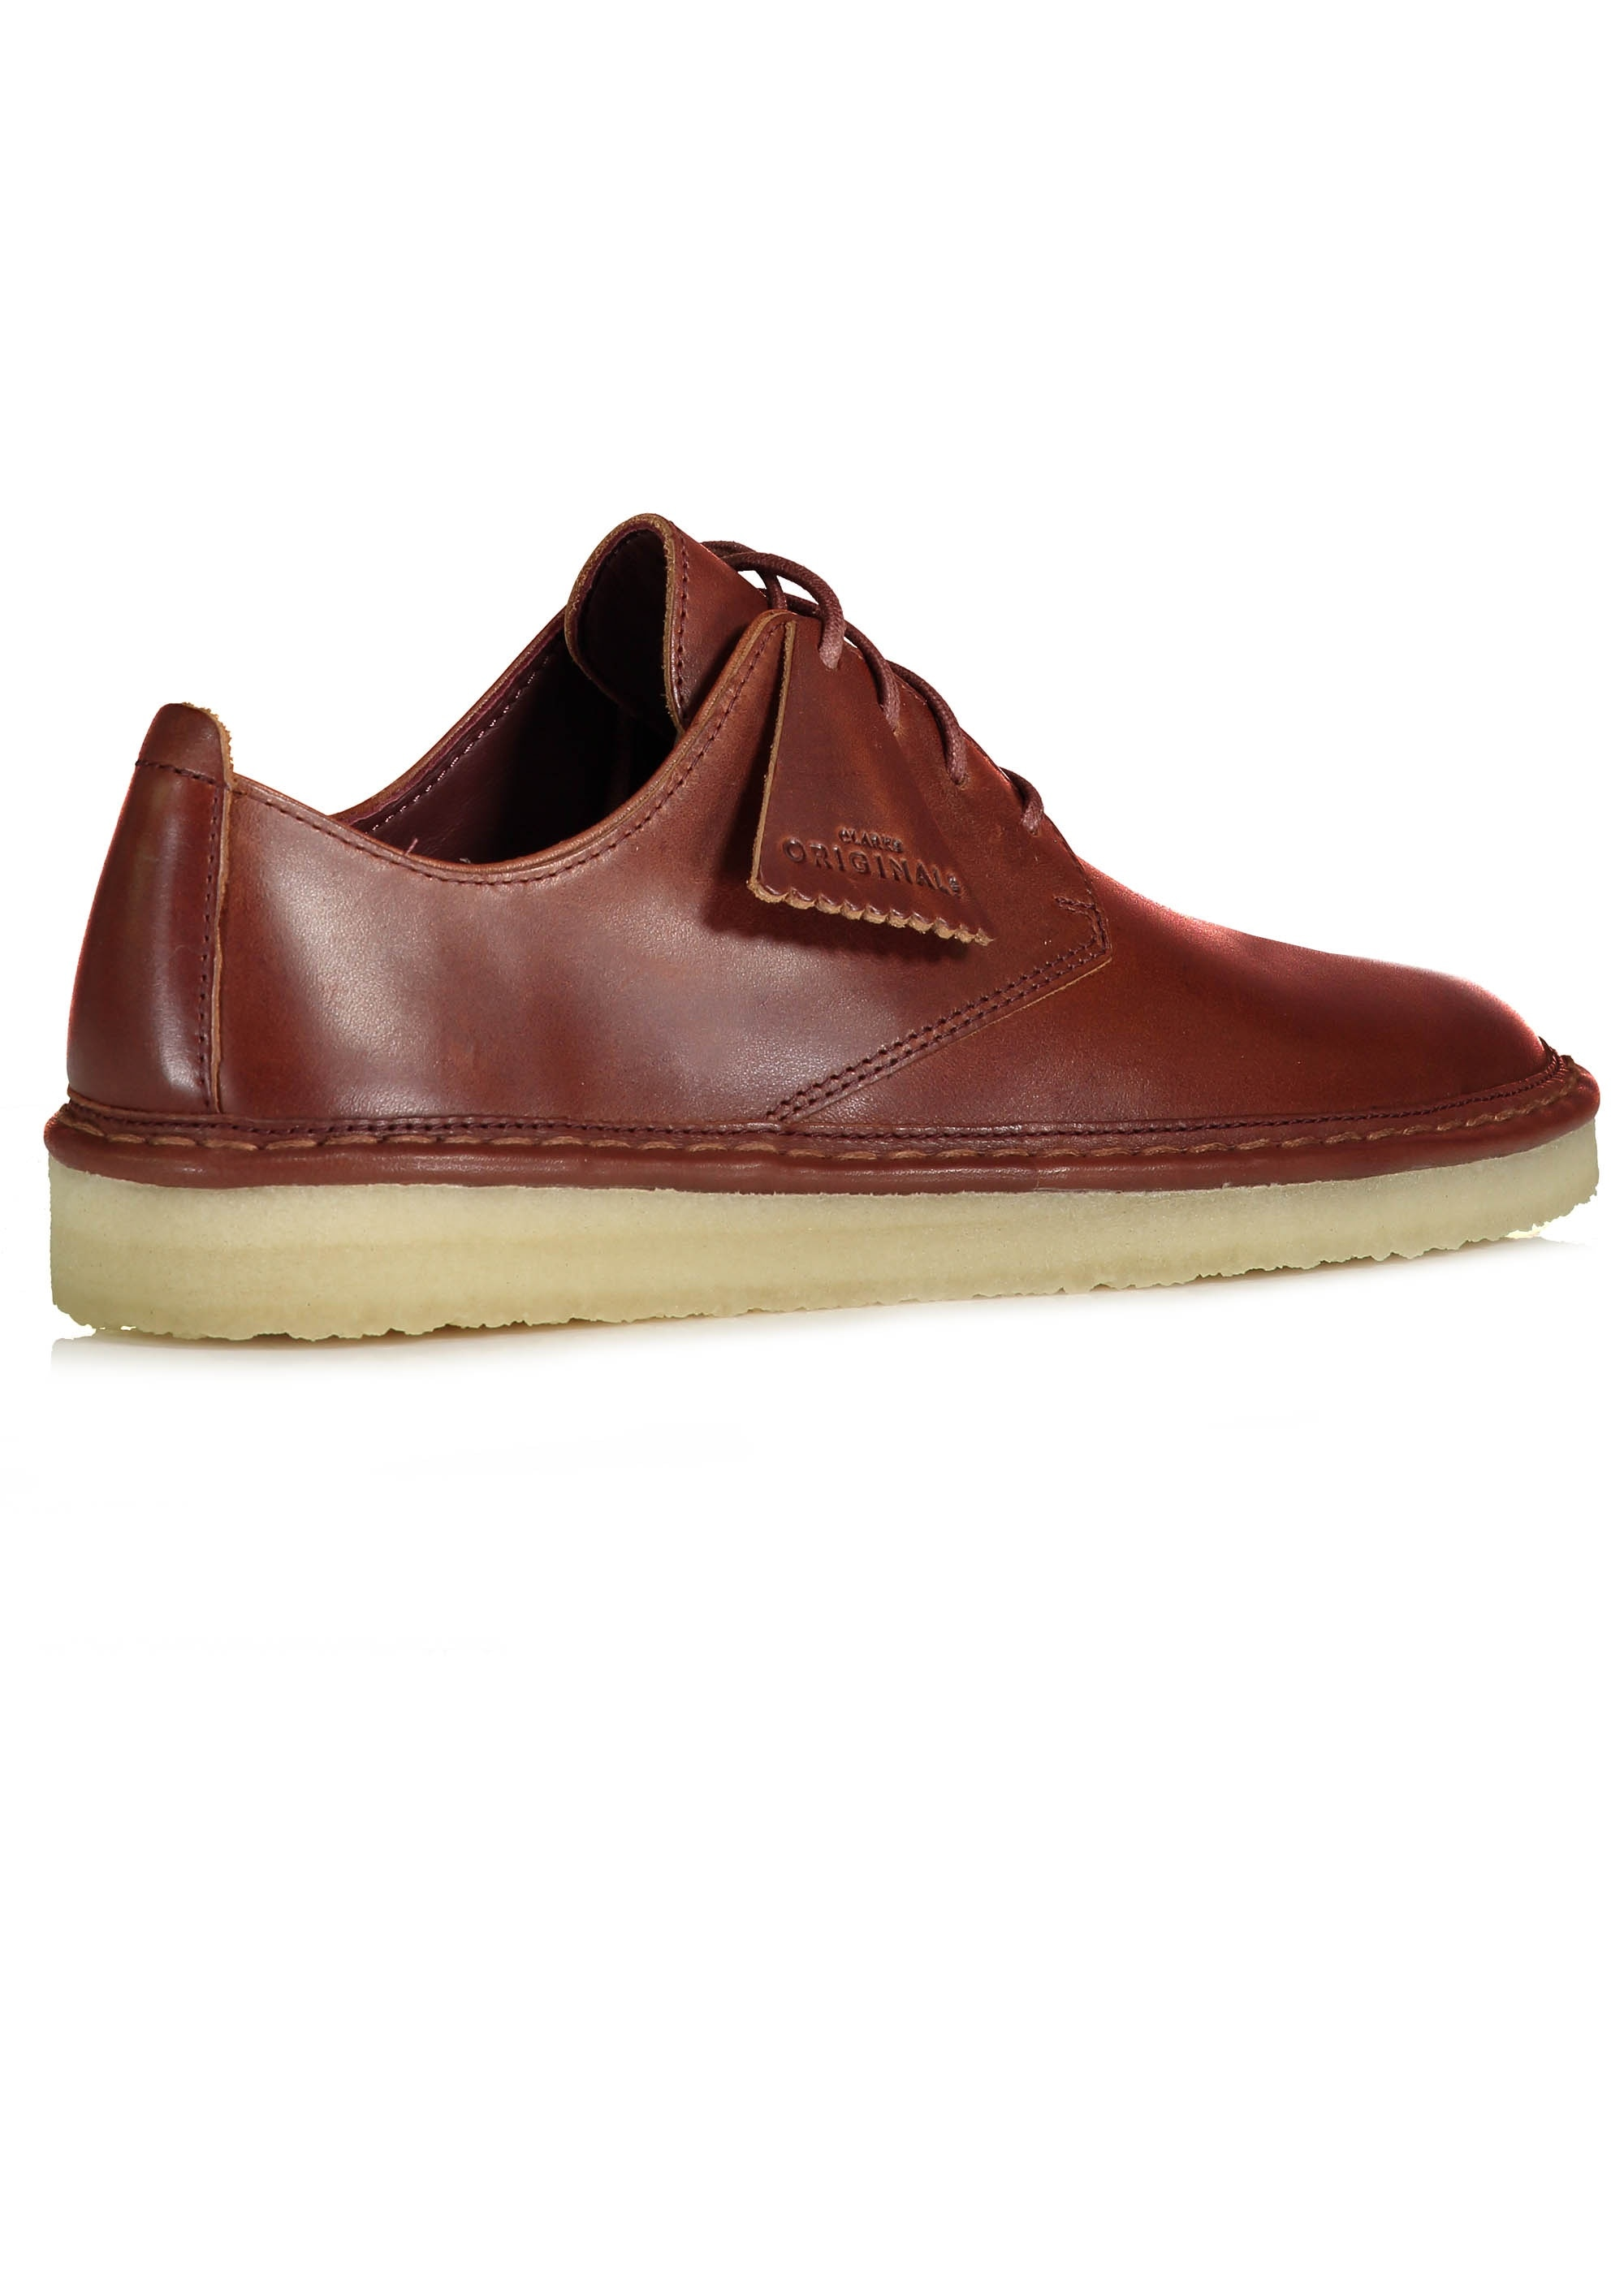 466267c80cf Clarks Originals Walbridge Lace Leather - Brown - Triads Mens from ...